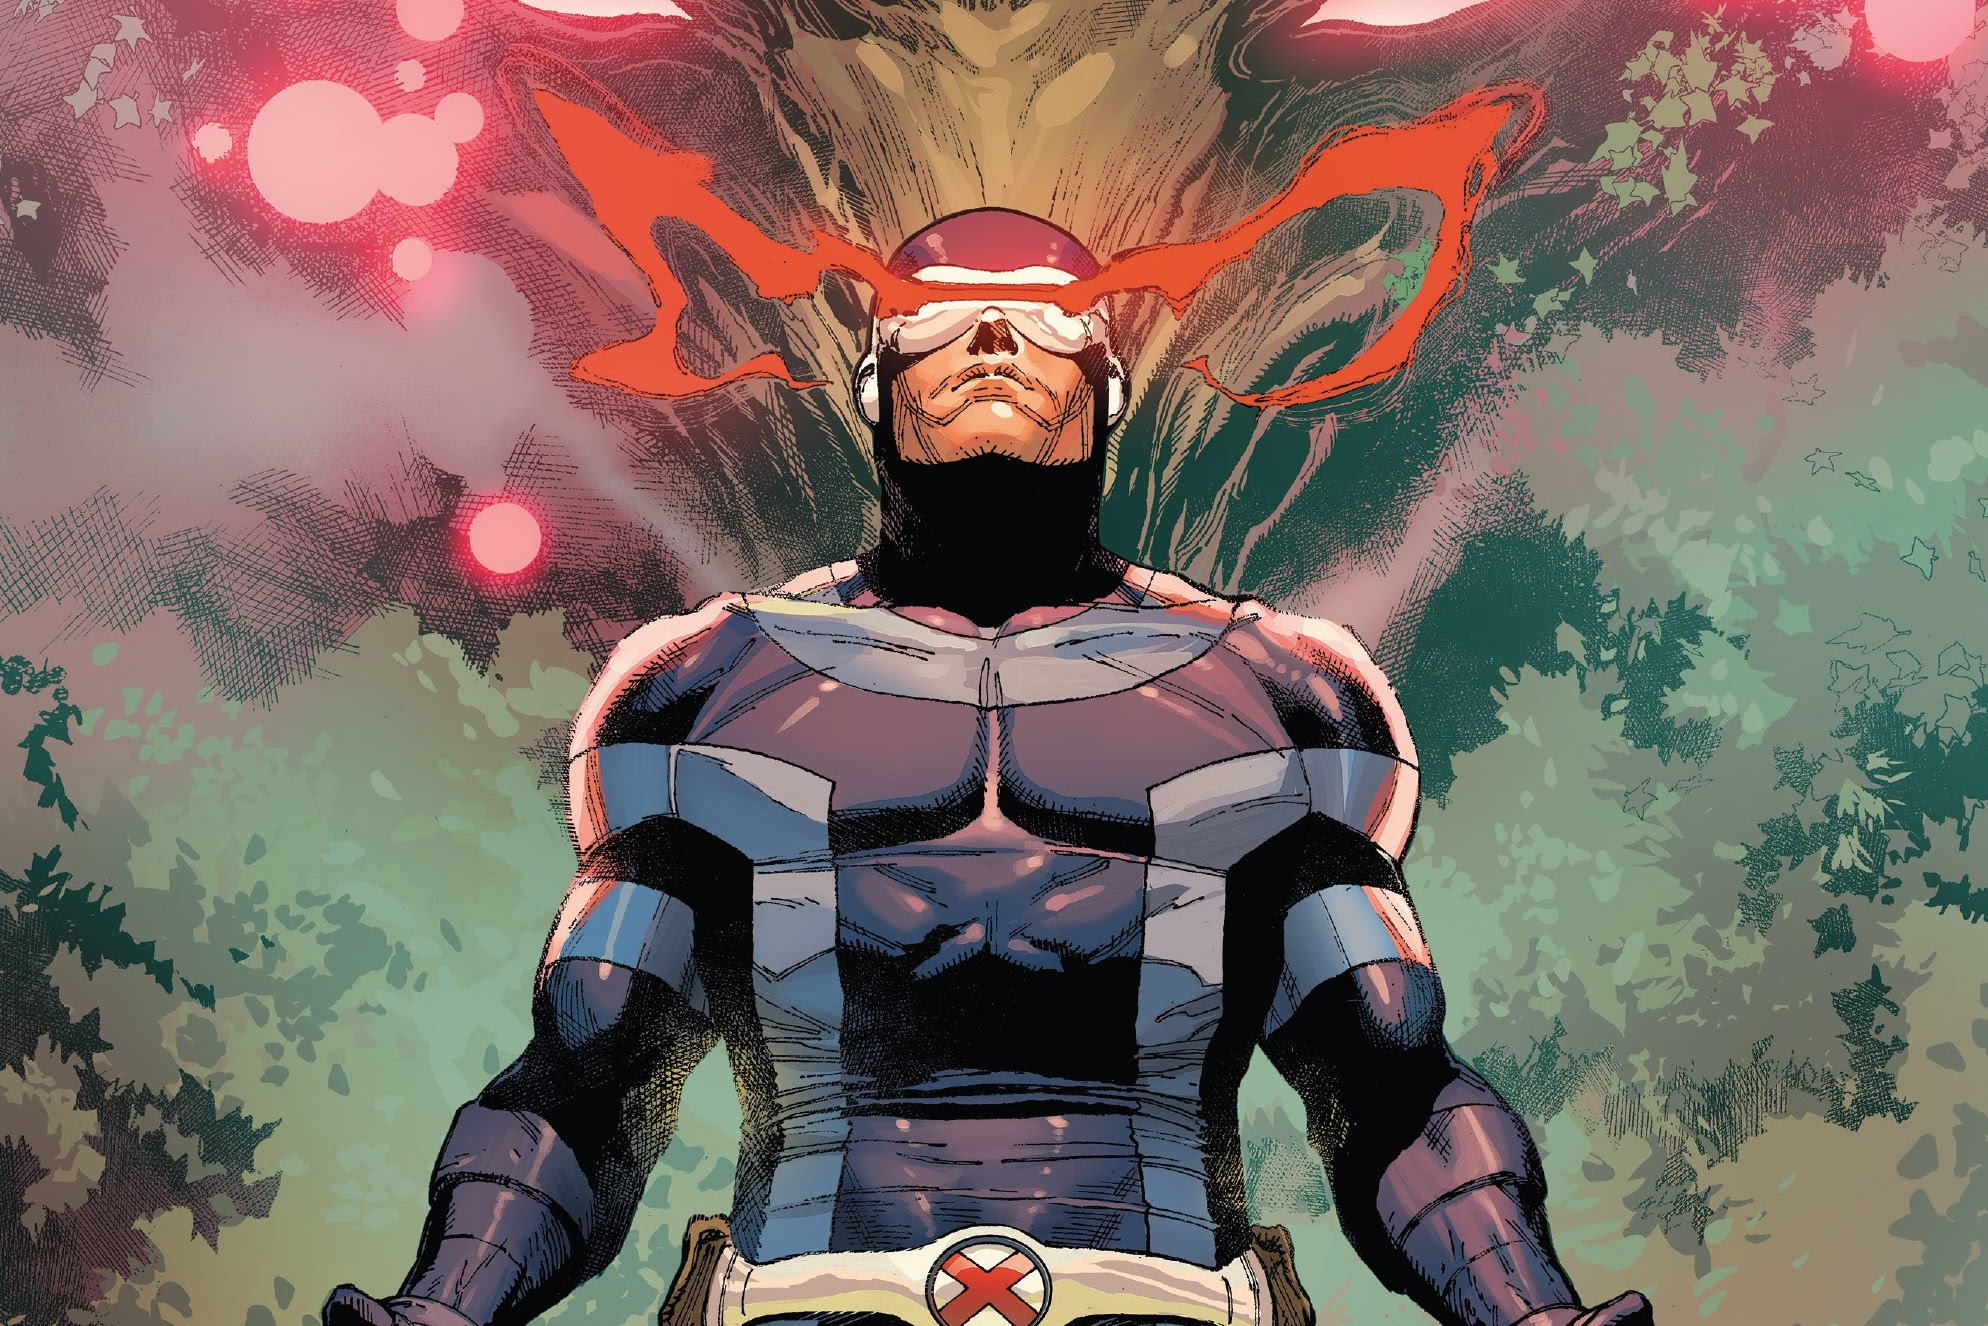 Eyes ablaze, Cyclops strikes a heroic pose on the cover of X-Men #16, Marvel Comics (2021).